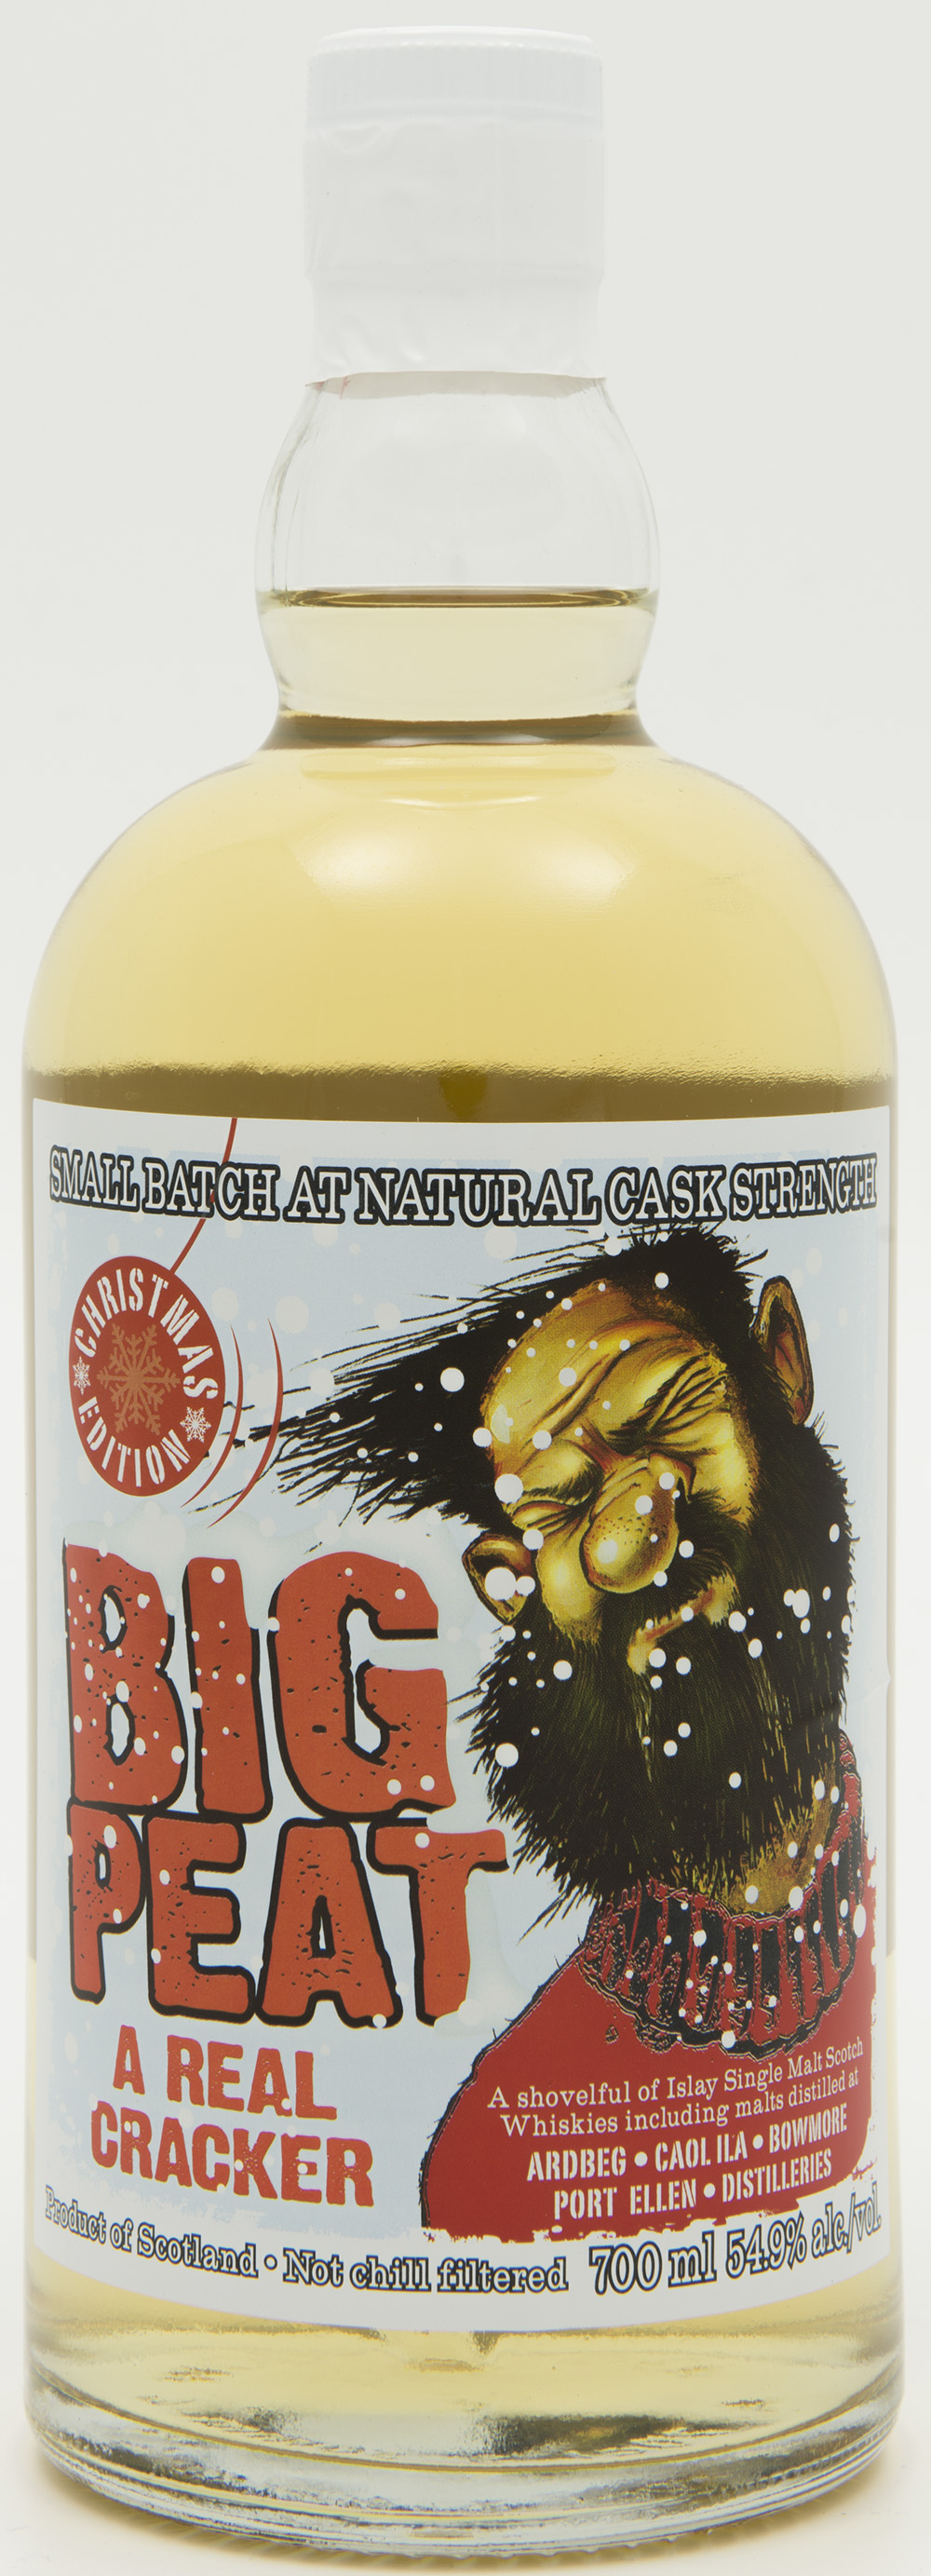 Billede: DSC_3667 Big Peat - Christmas Edition 2013 - bottle front.jpg